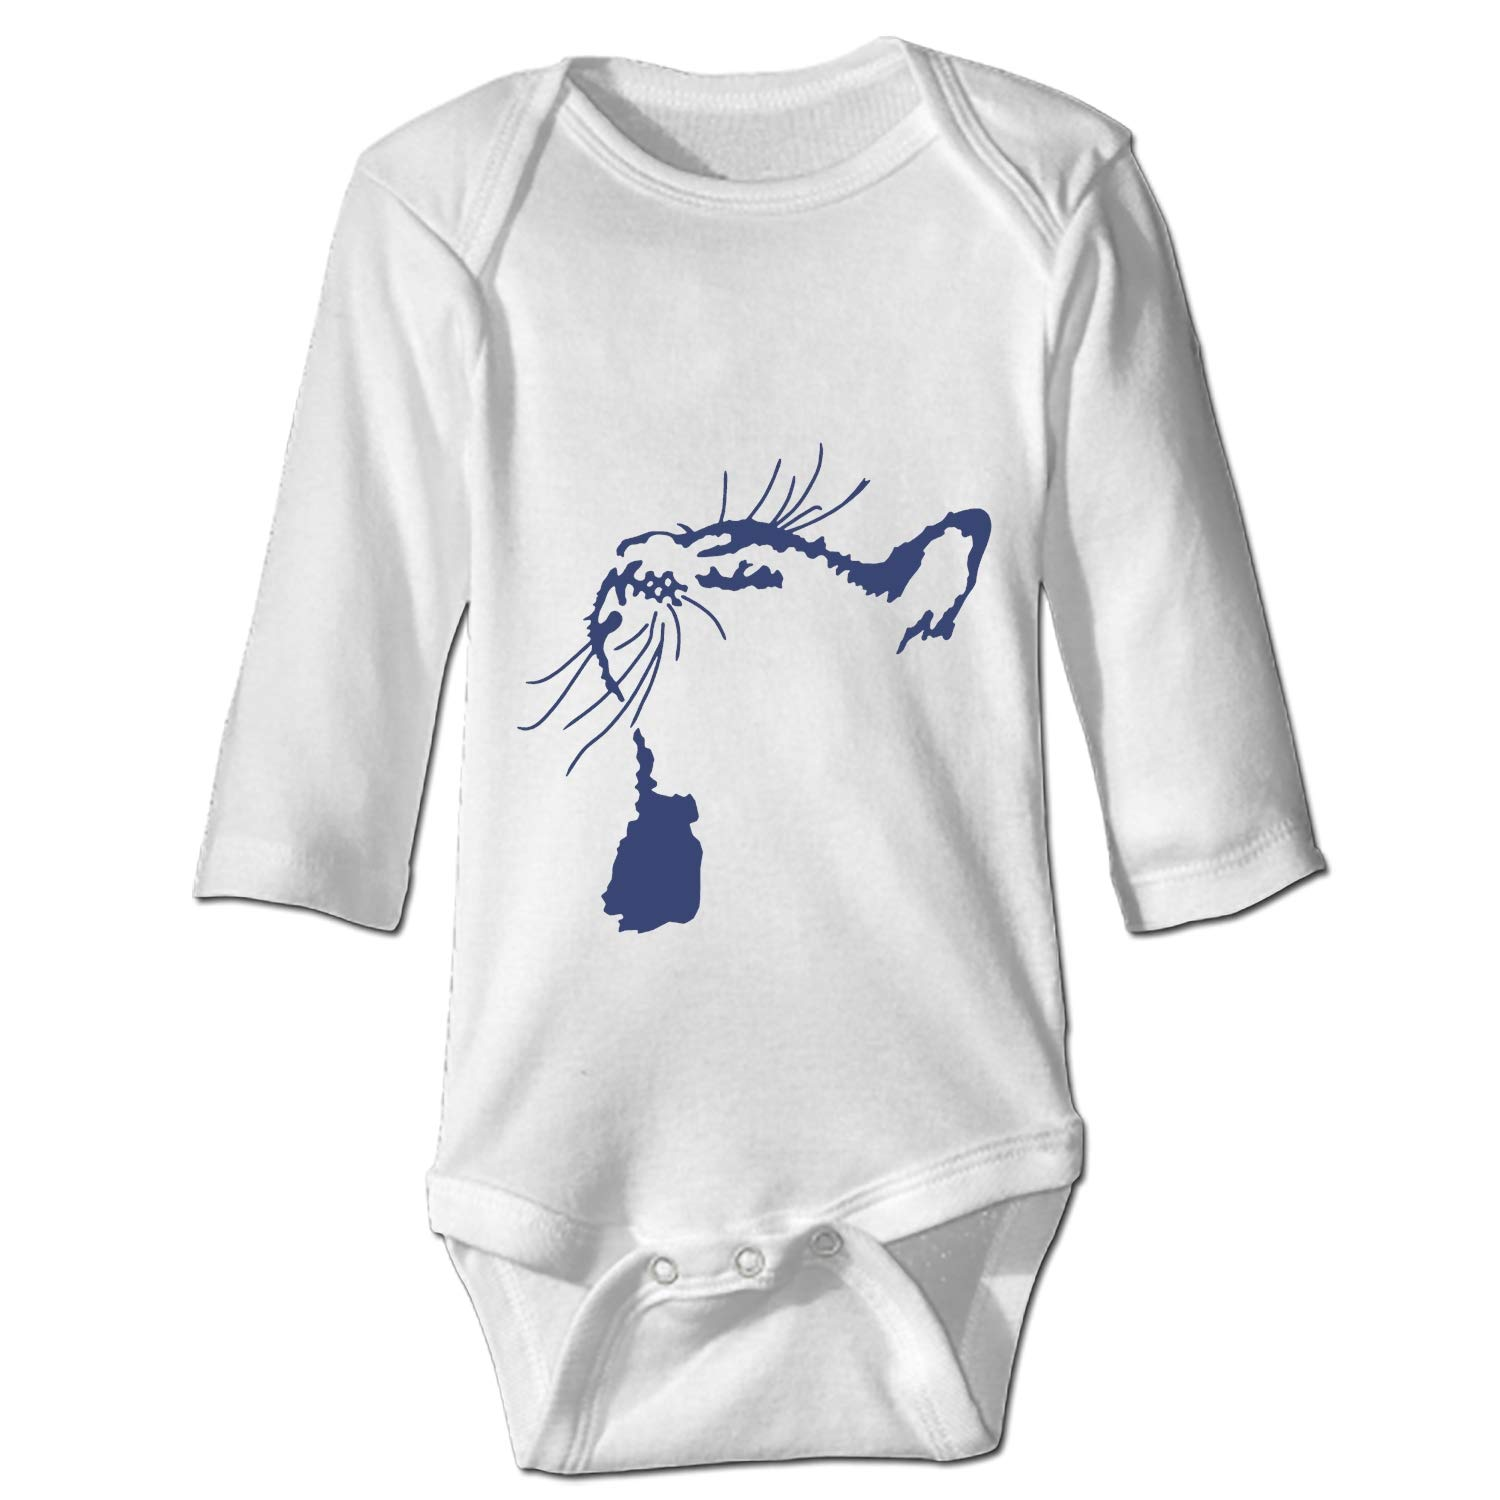 Baby Funny Cat Bodysuits Rompers Outfits Casual Clothes,Long Sleeve